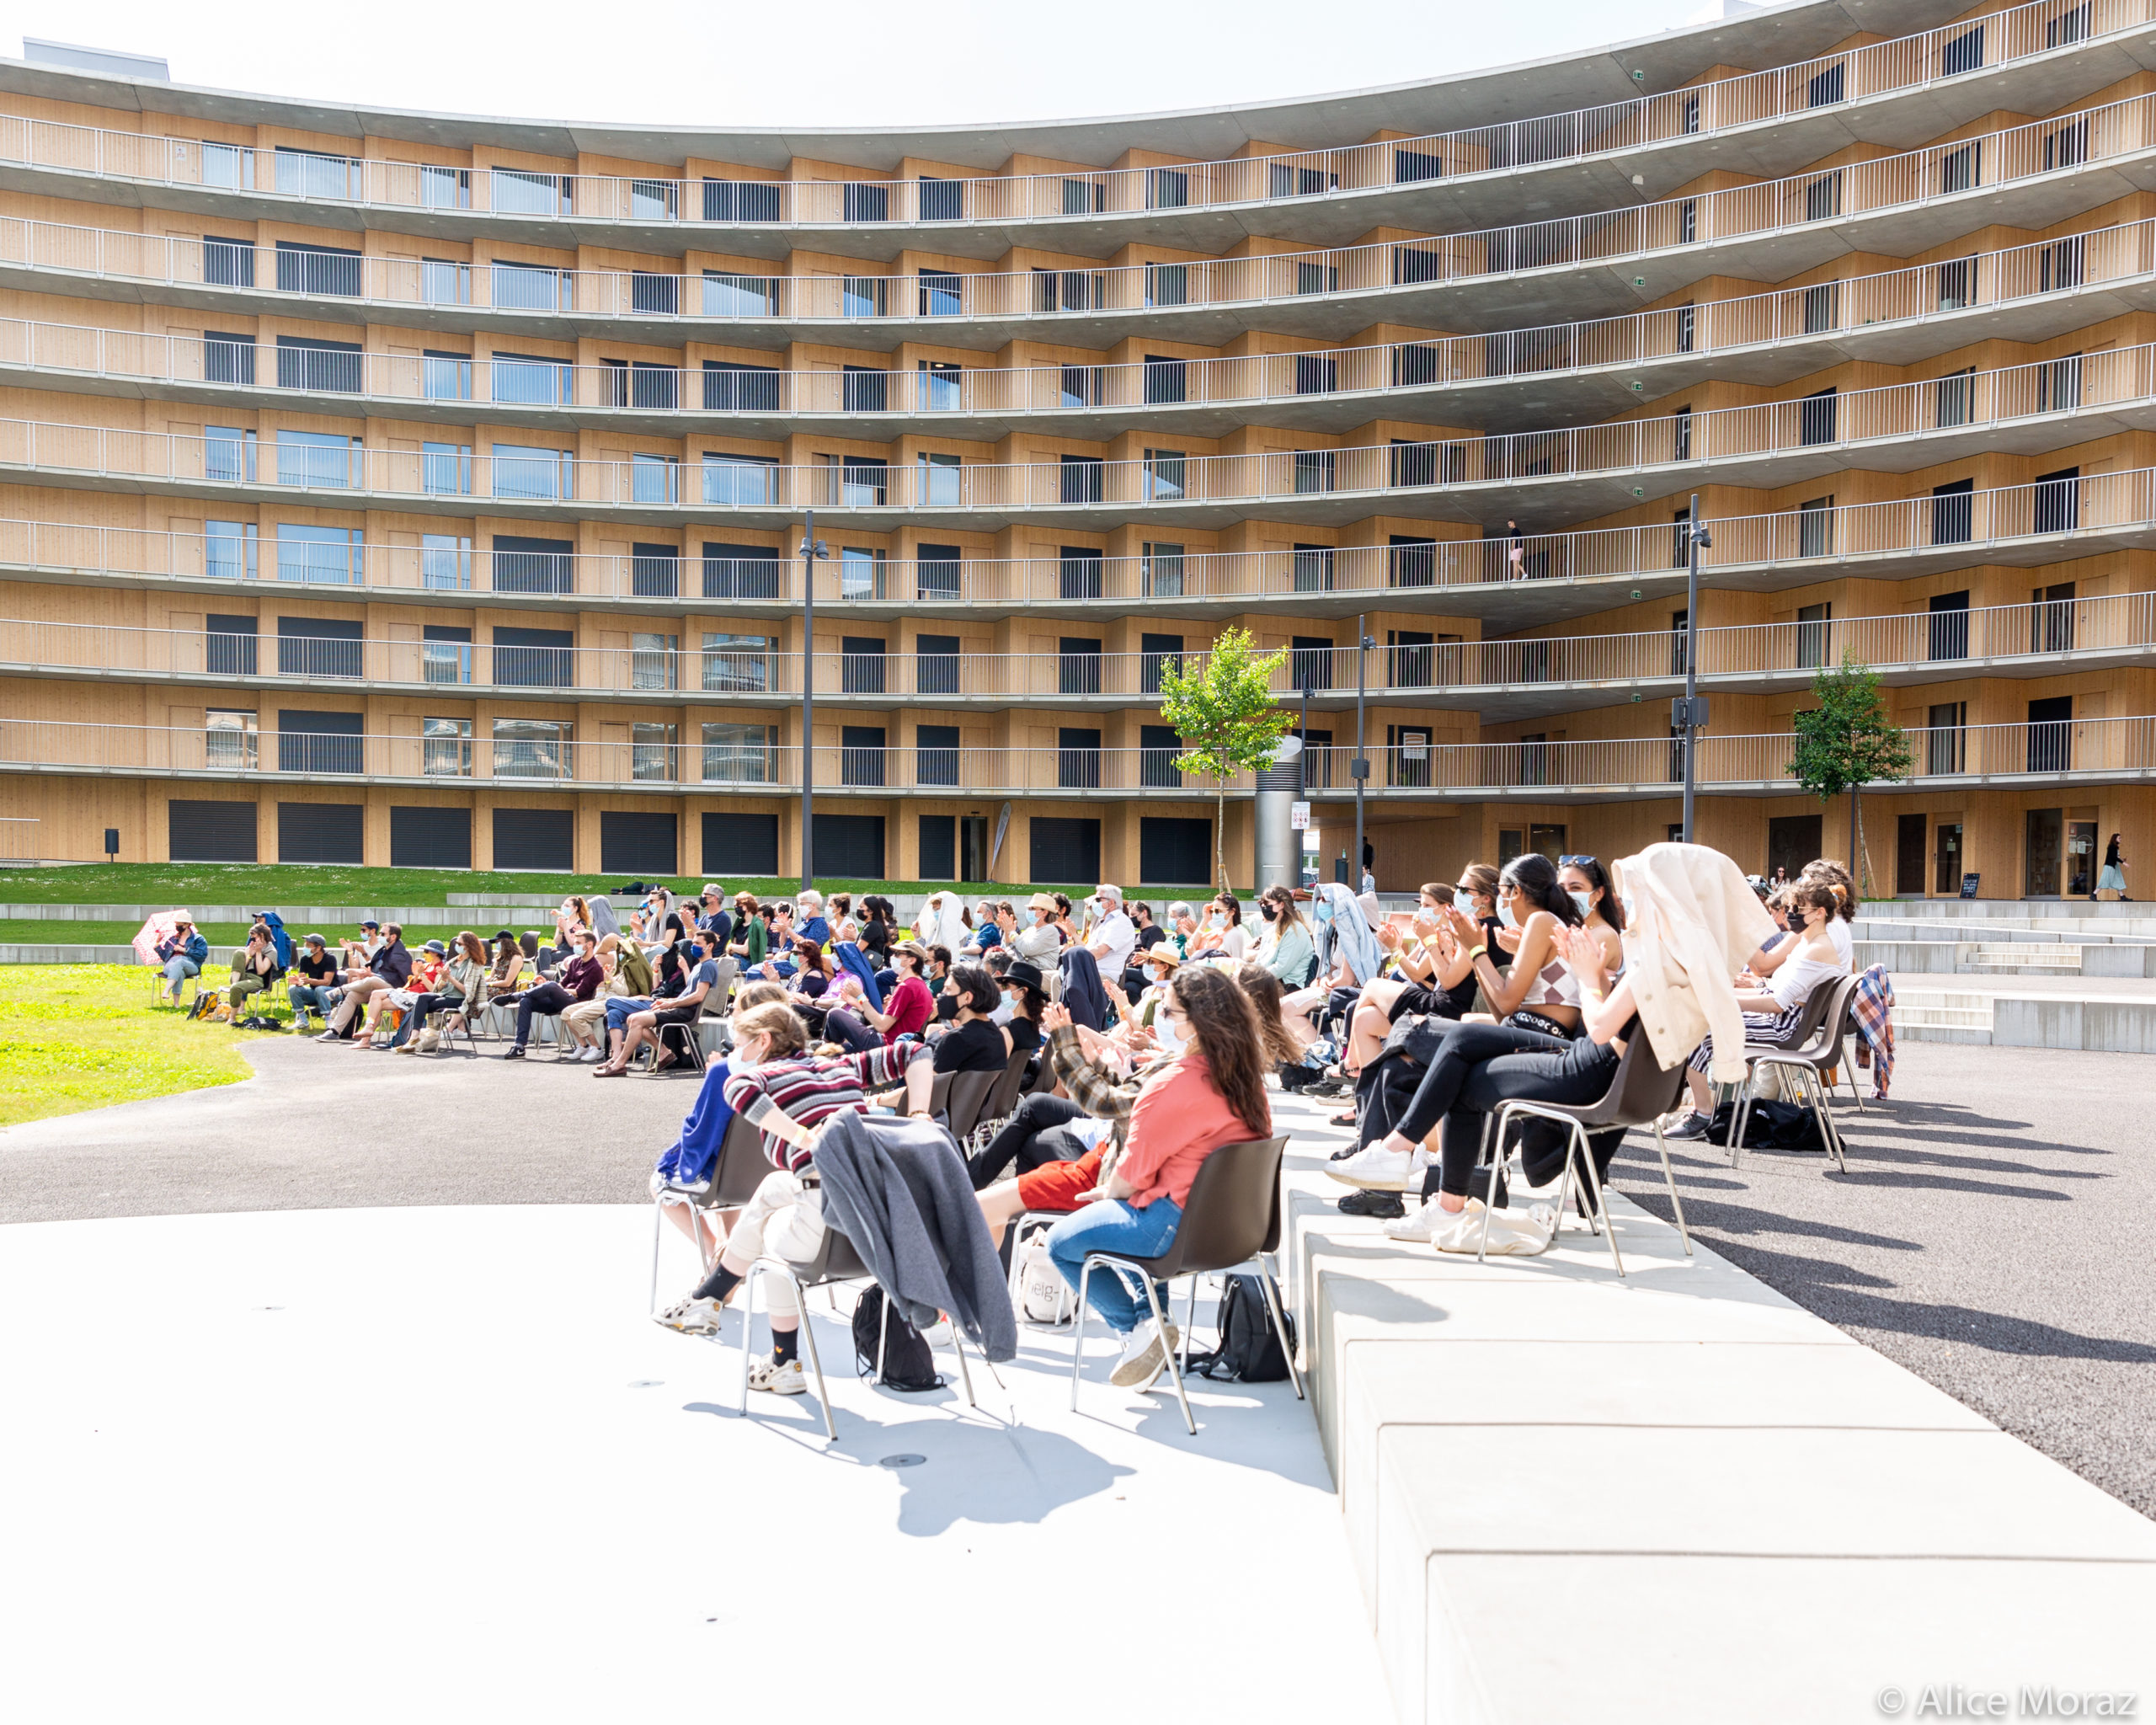 A picture of an audience sitting in the courtyard of a circular building.